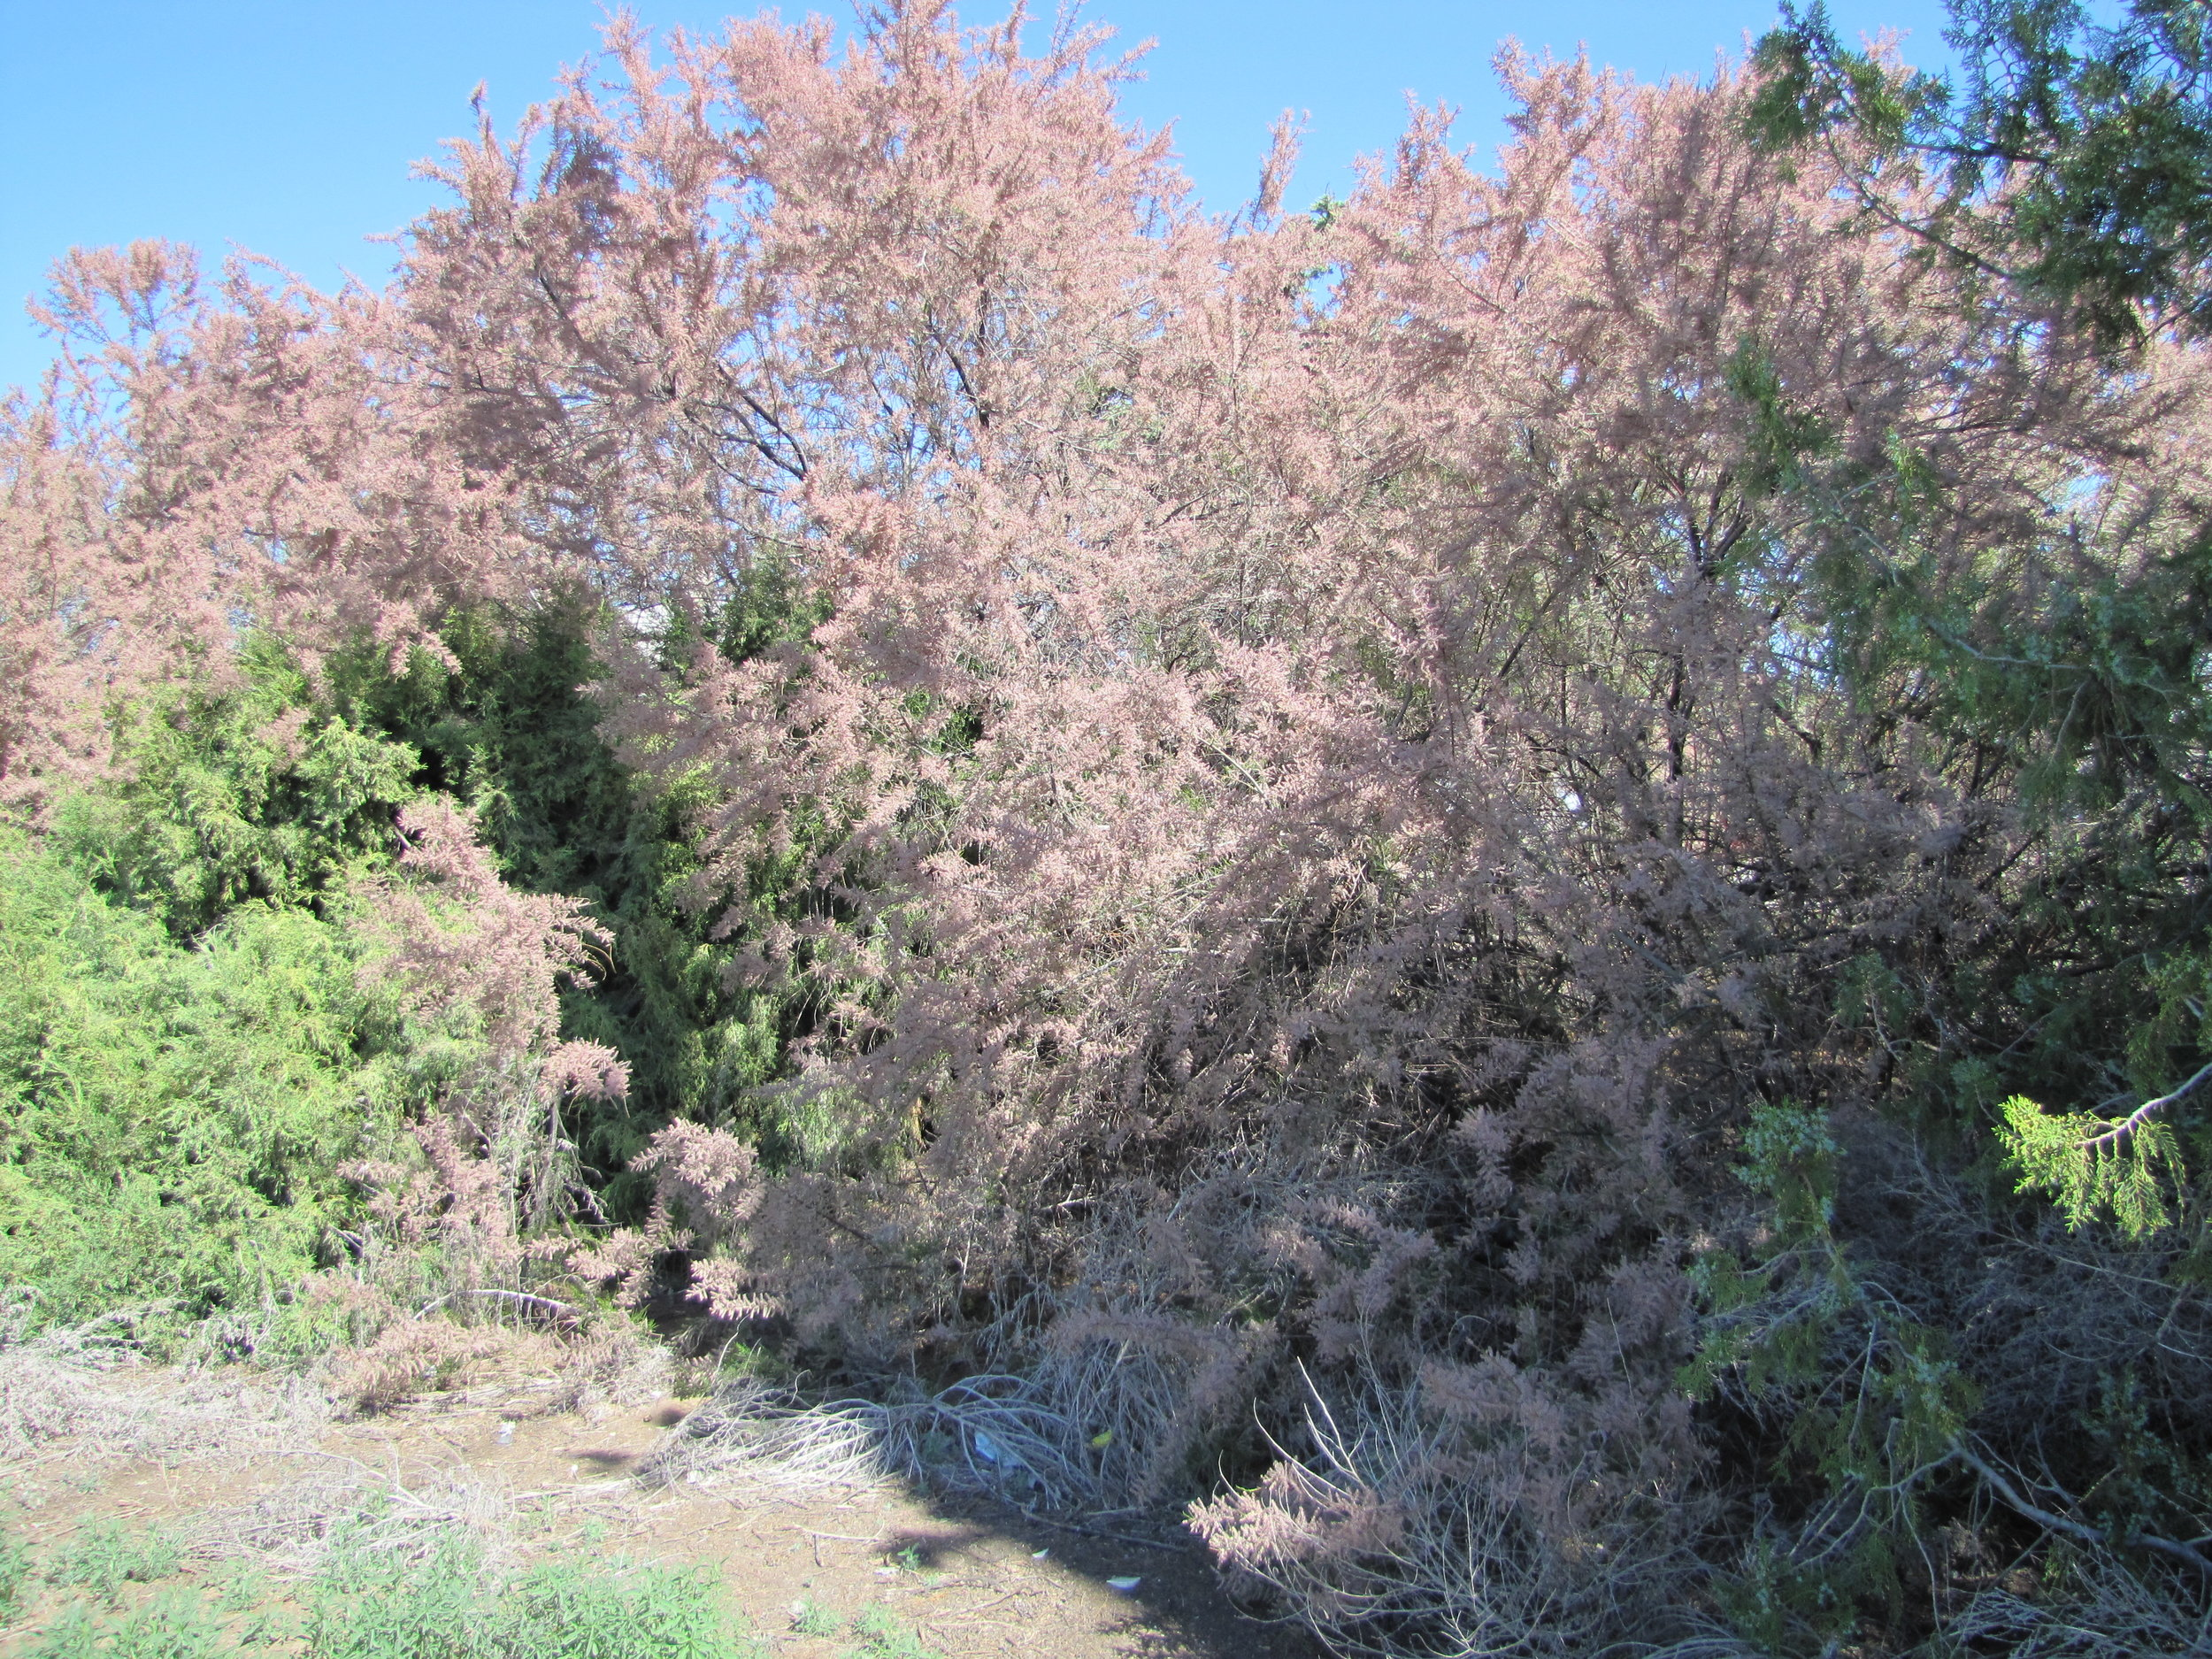 Salt cedar is normally seen growing as an ornamental, due to its brilliant pink flowers.